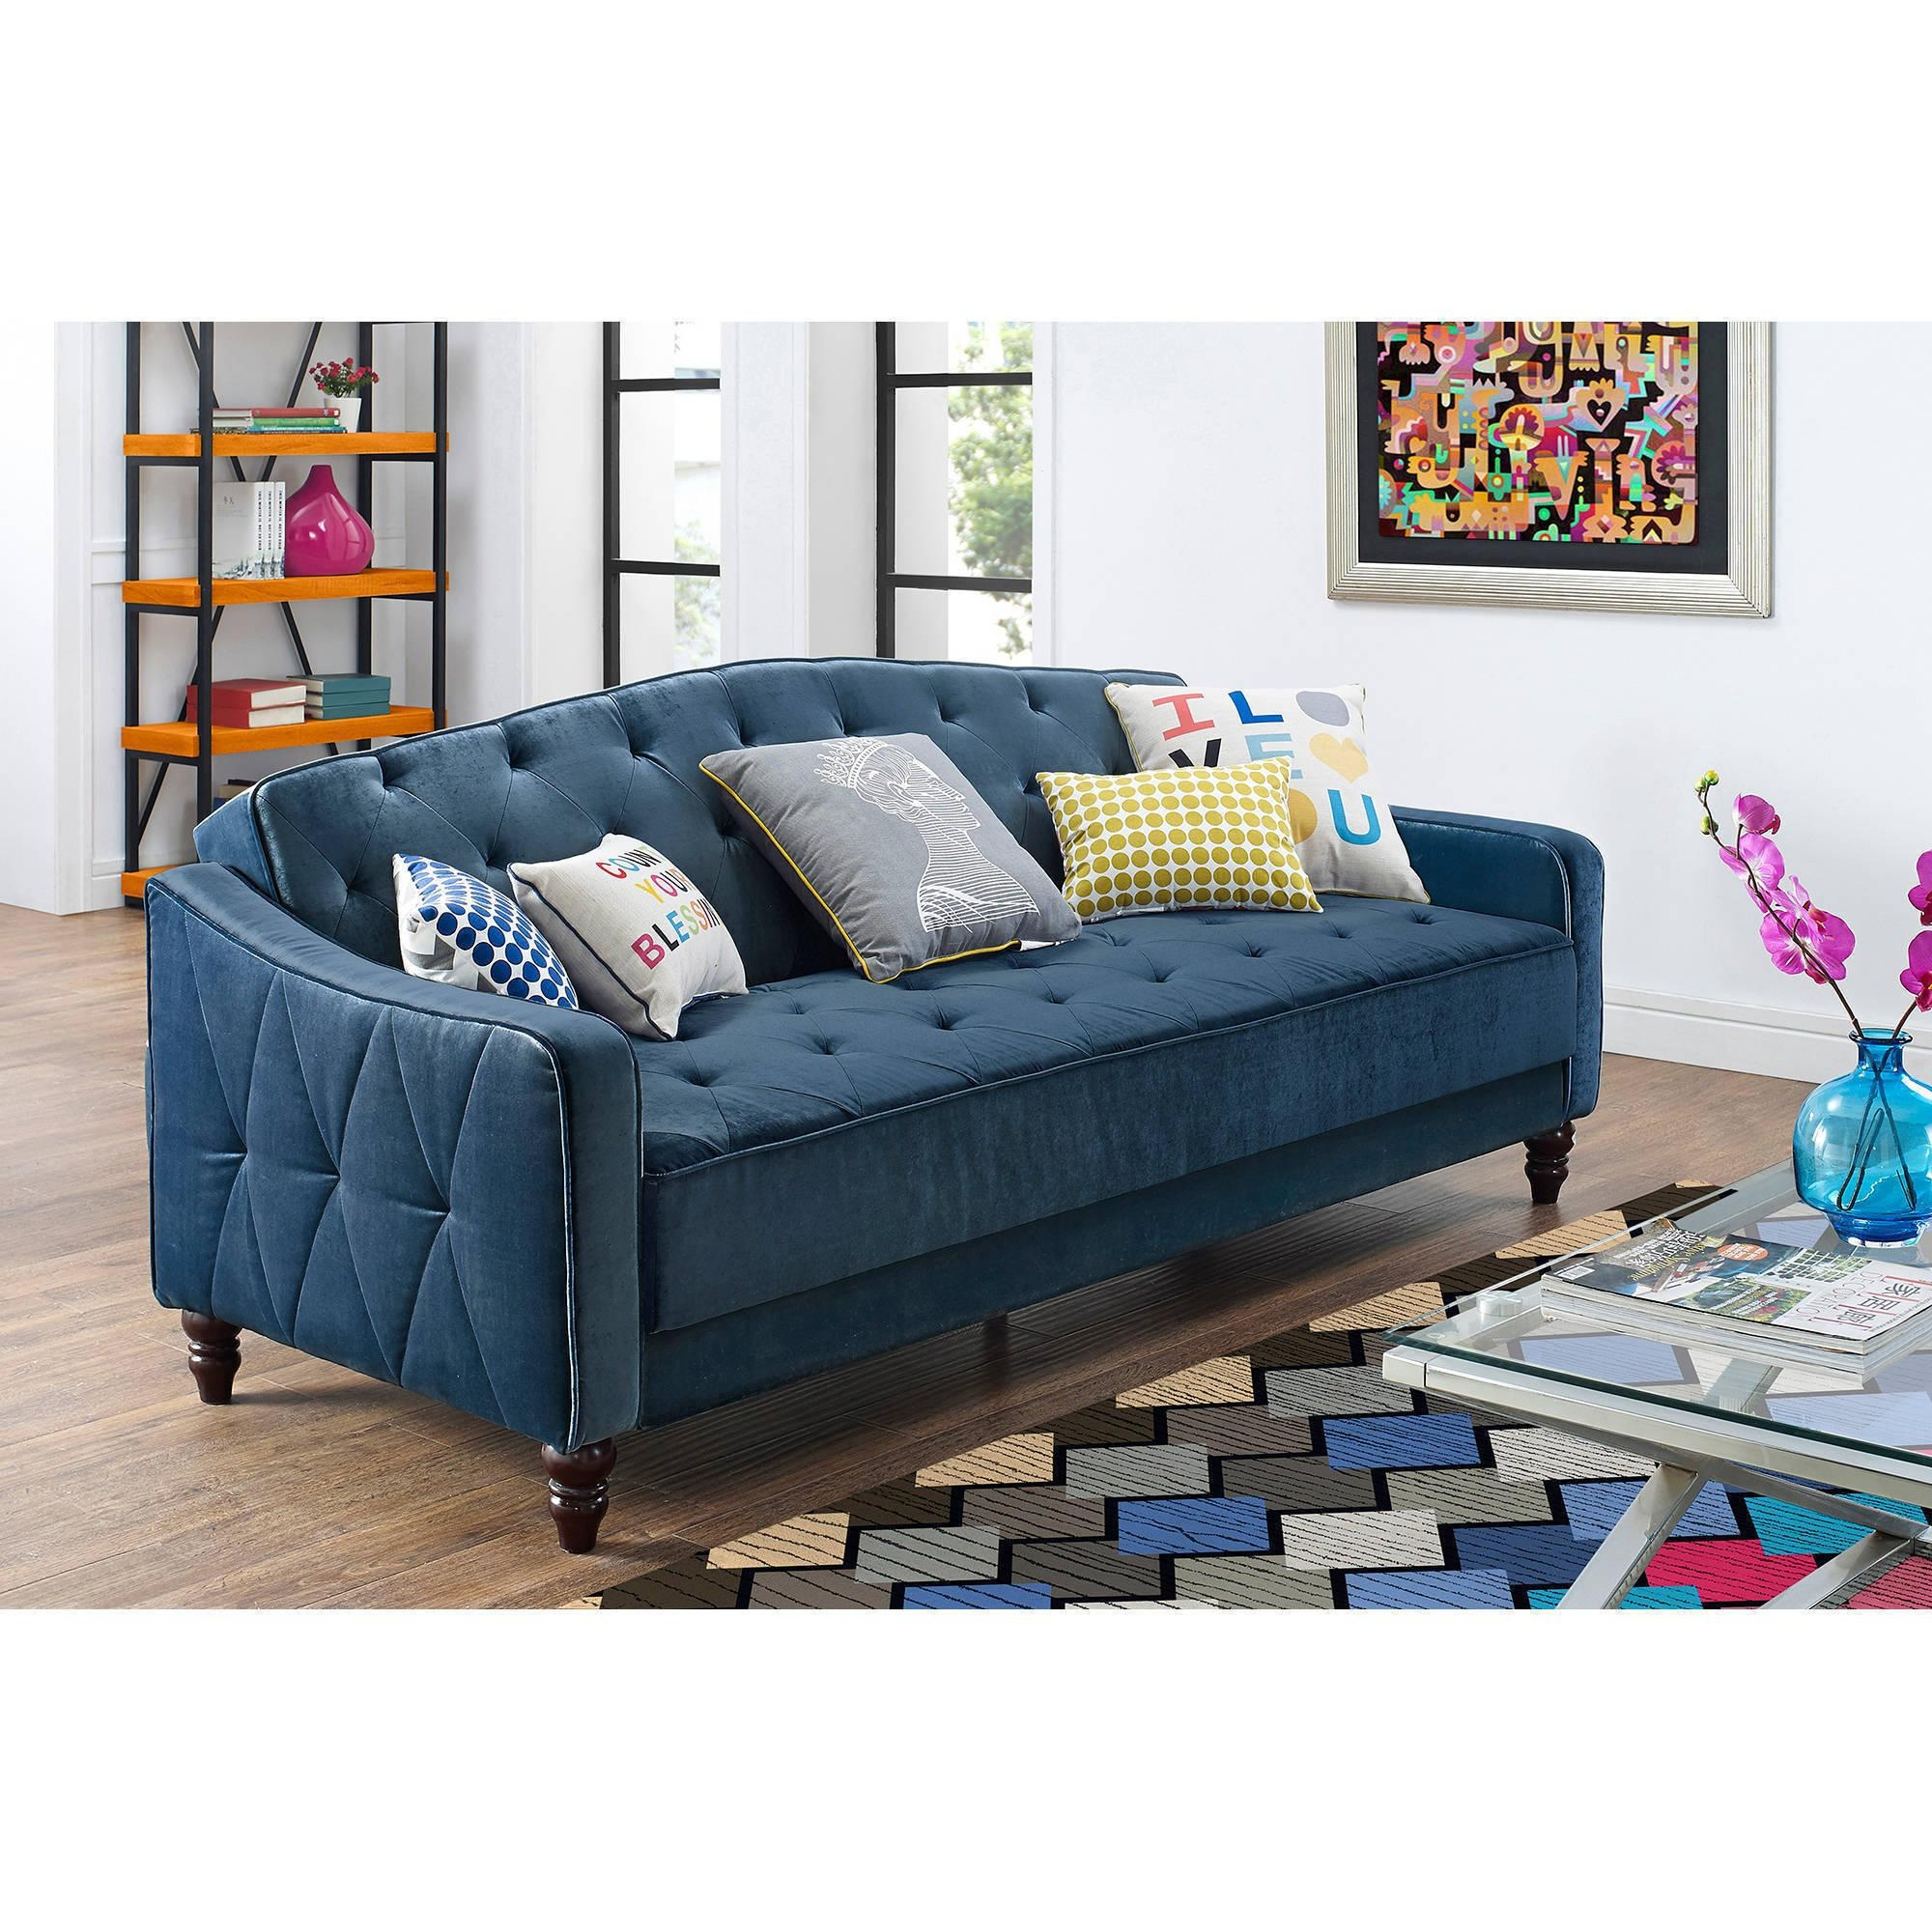 Futons, Futon Beds, Sofa Beds – Walmart In Futon Couch Beds (View 2 of 20)